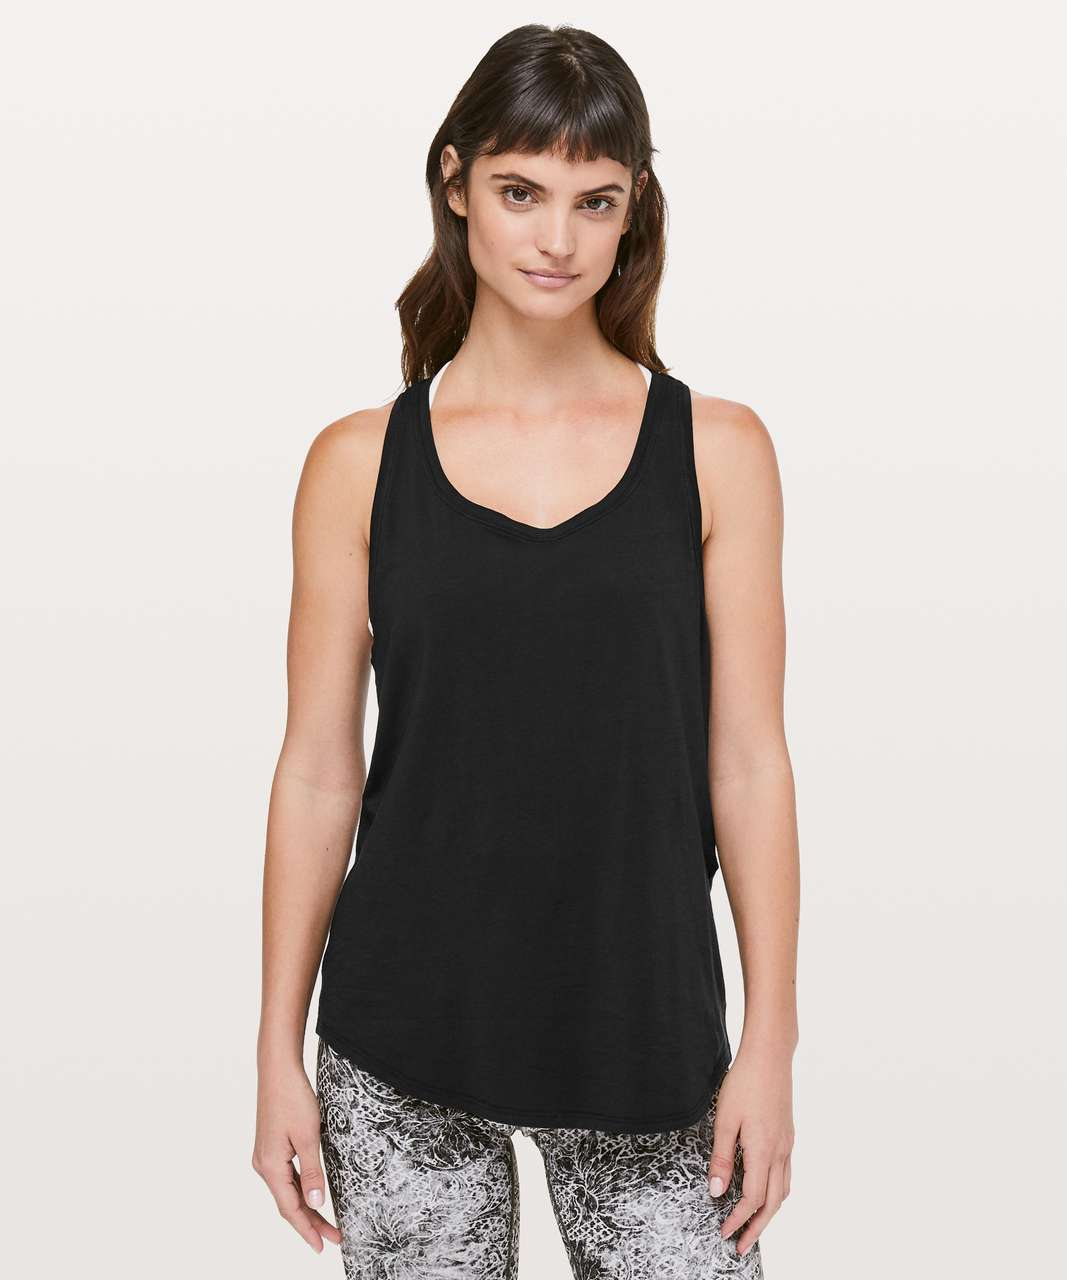 Lululemon Love Tank *Pleated - Black (Second Release)